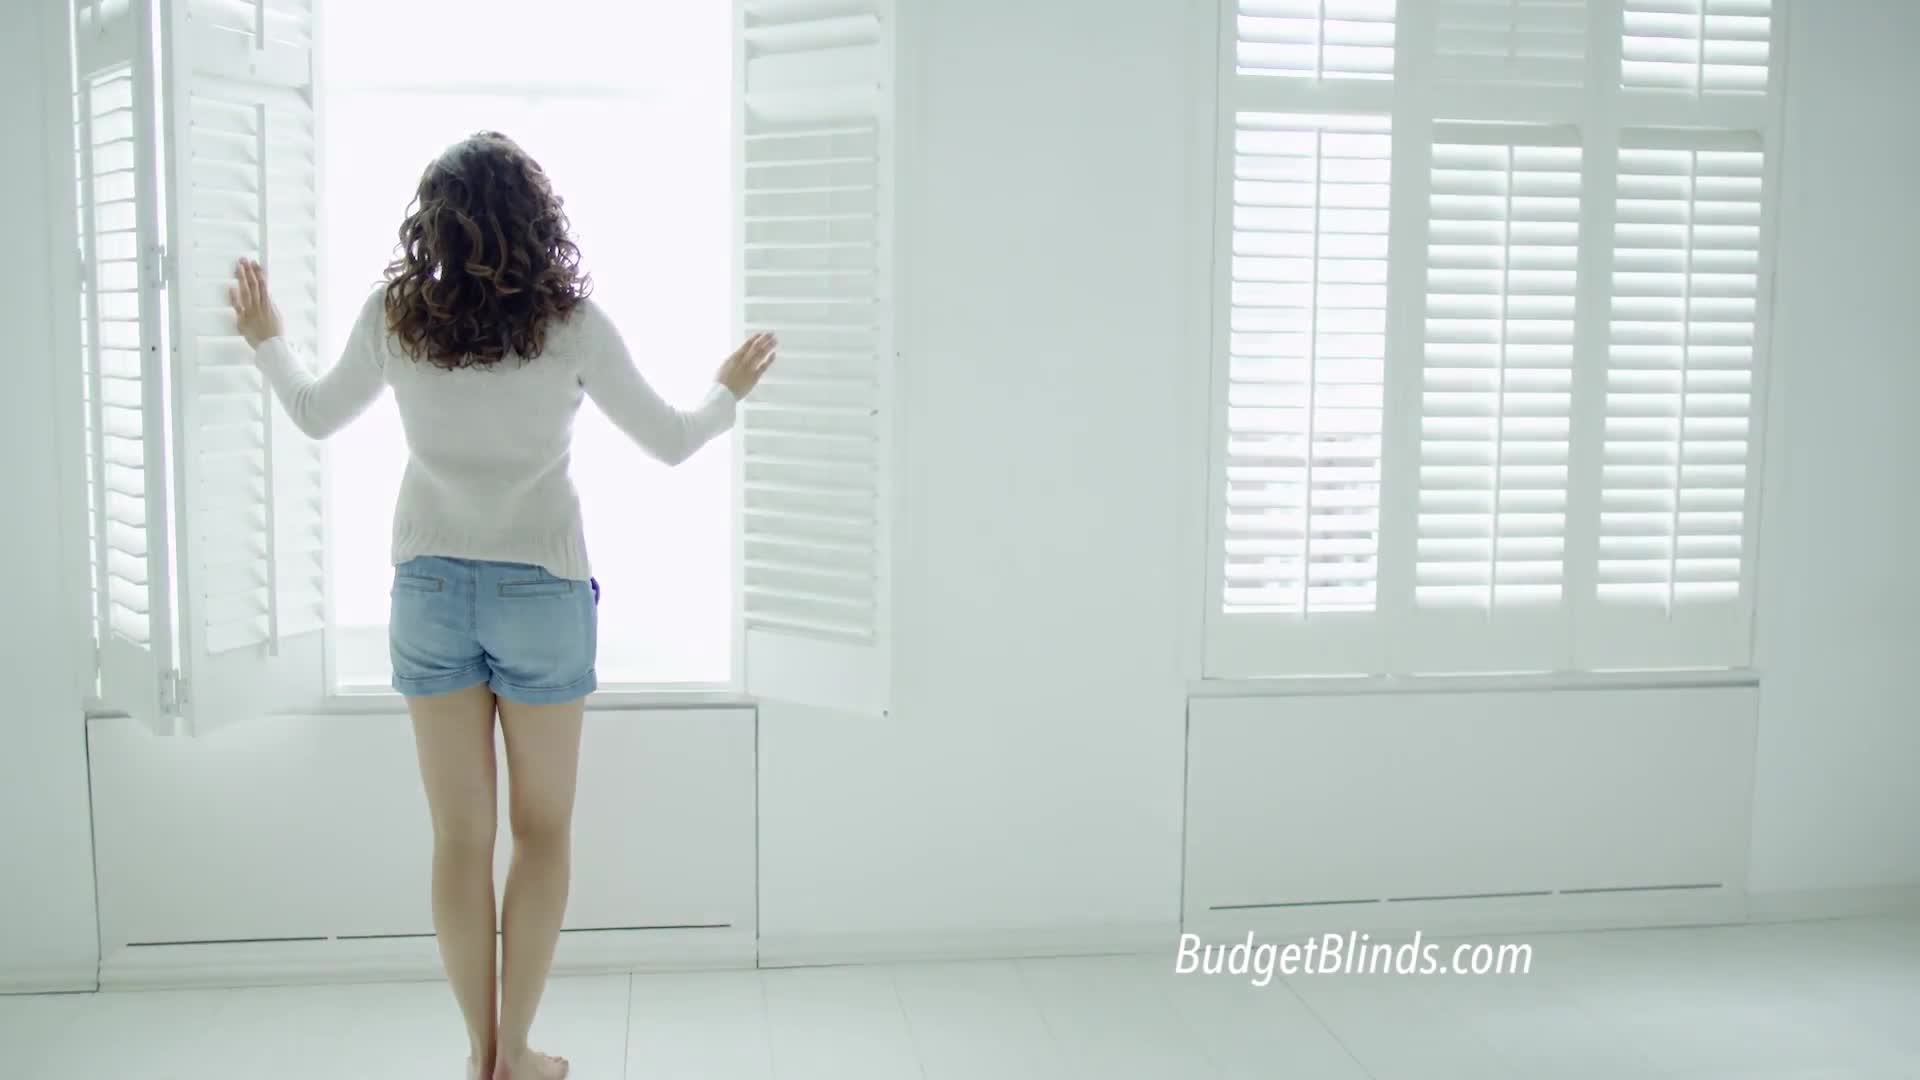 Budget Blinds - Window Shade & Blind Stores - 778-765-4192